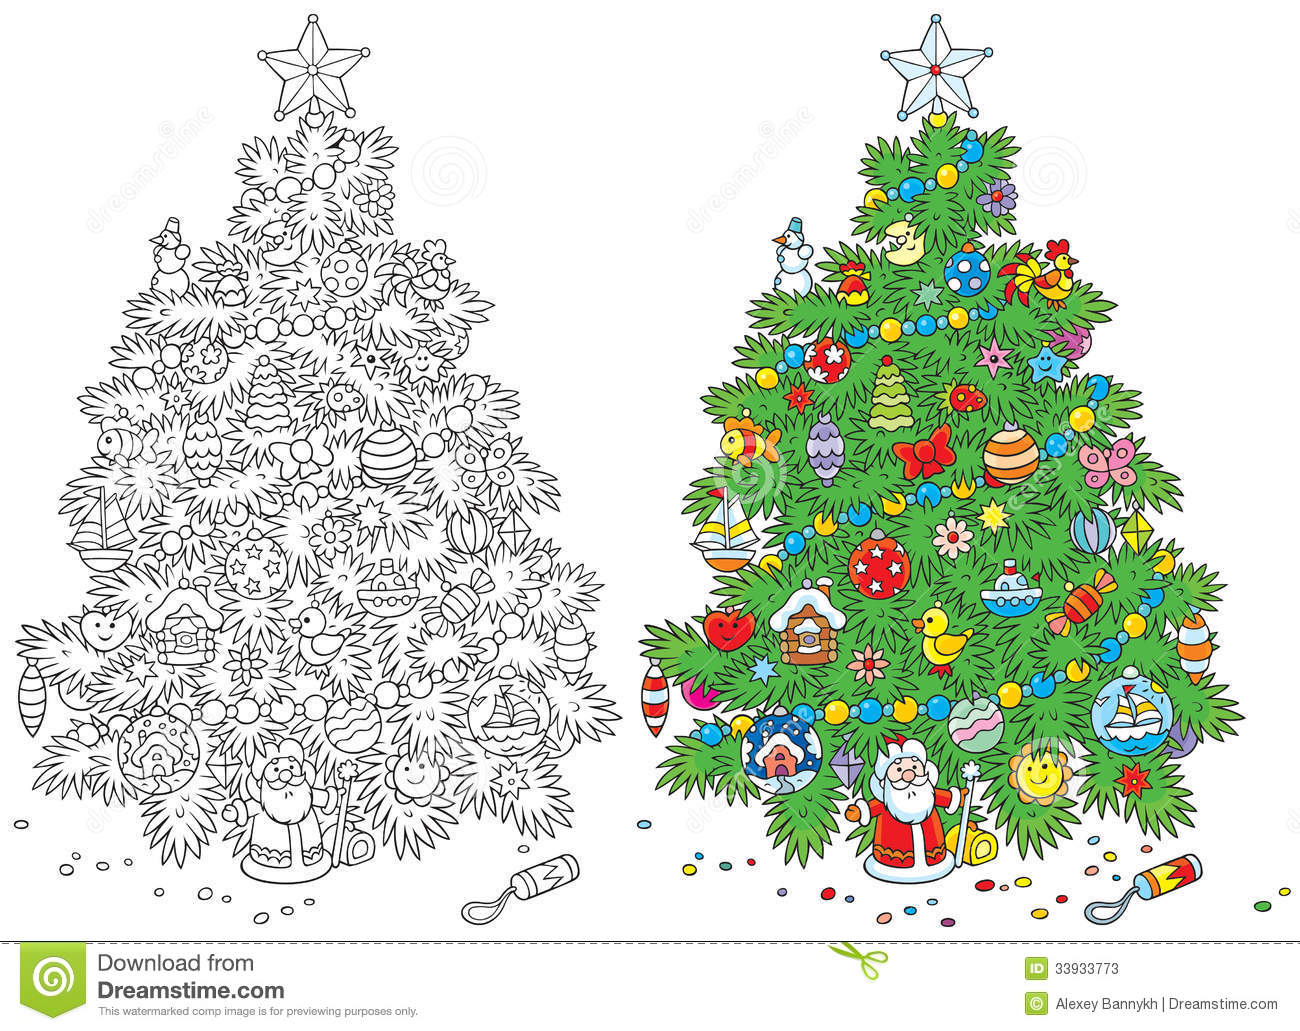 Christmas tree stock vector. Illustration of year, outline - 33933773